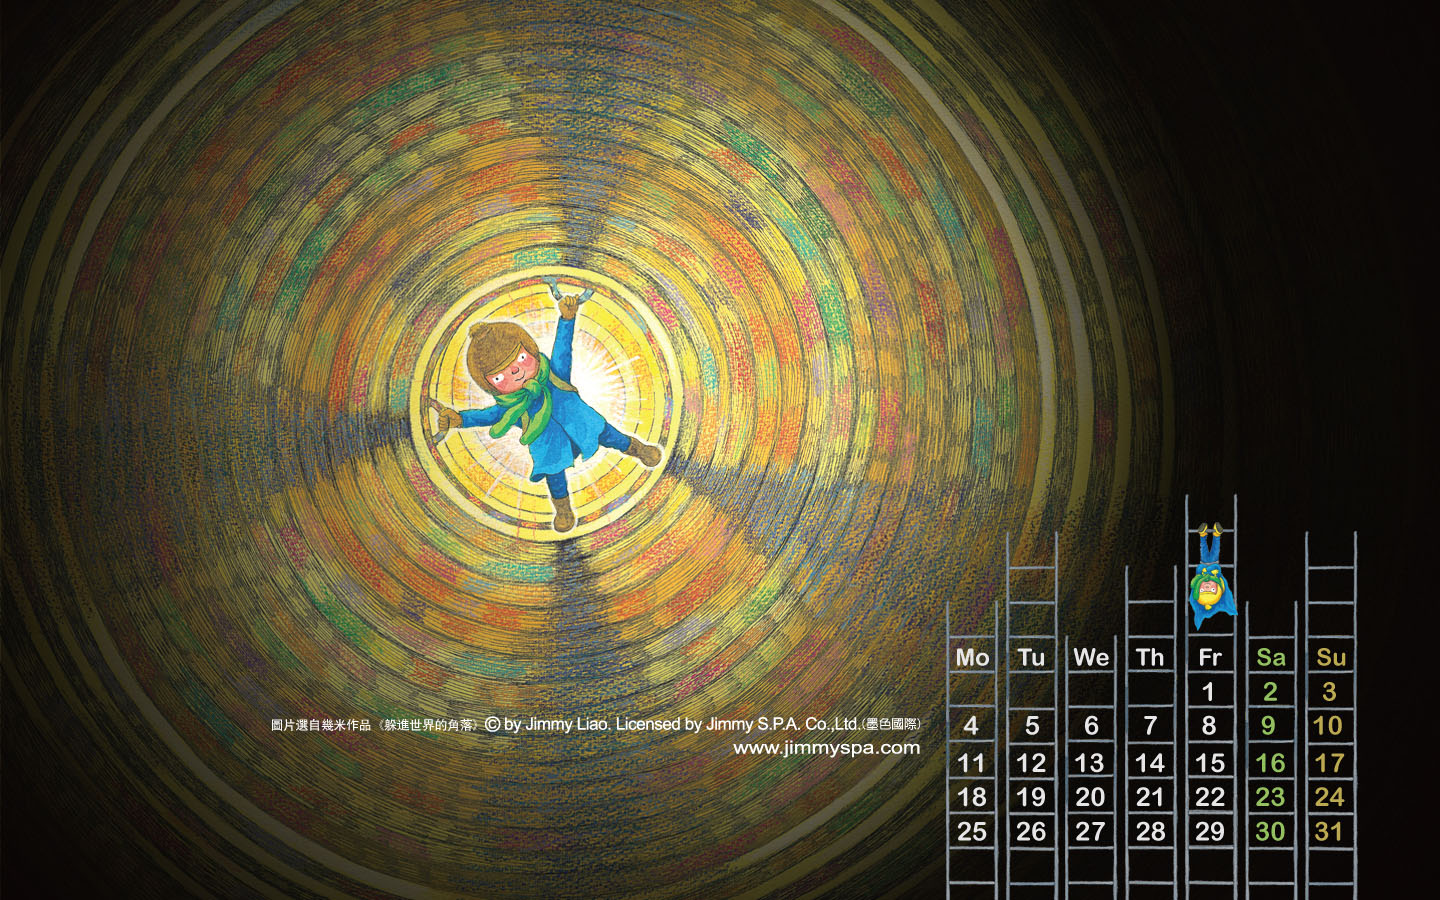 In January Calendar Wallpaper 29732